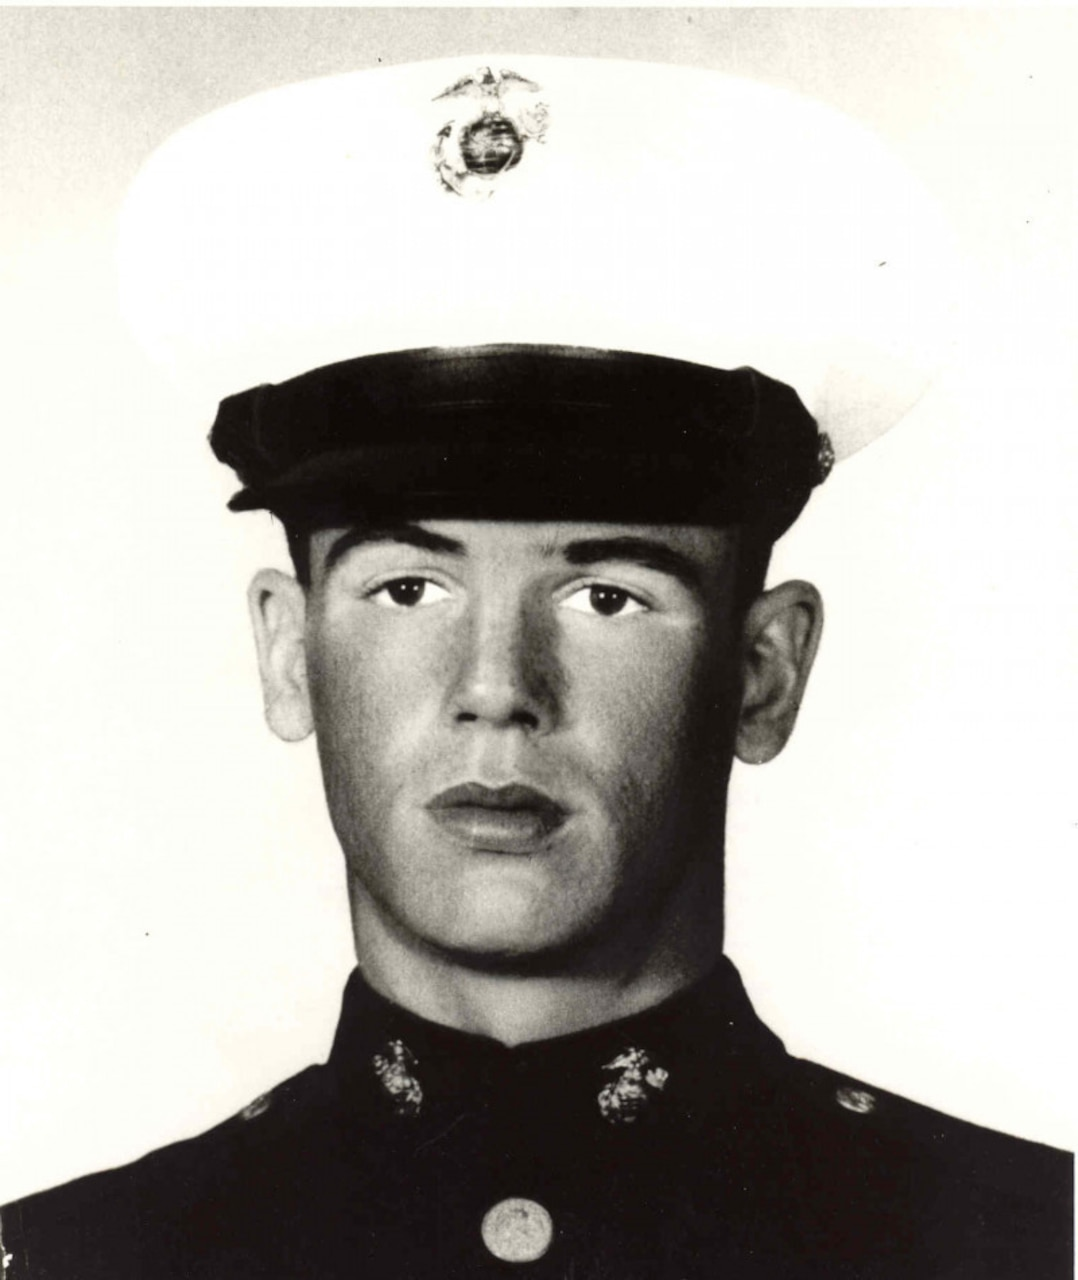 A man in uniform and a dress cap looks straight ahead.